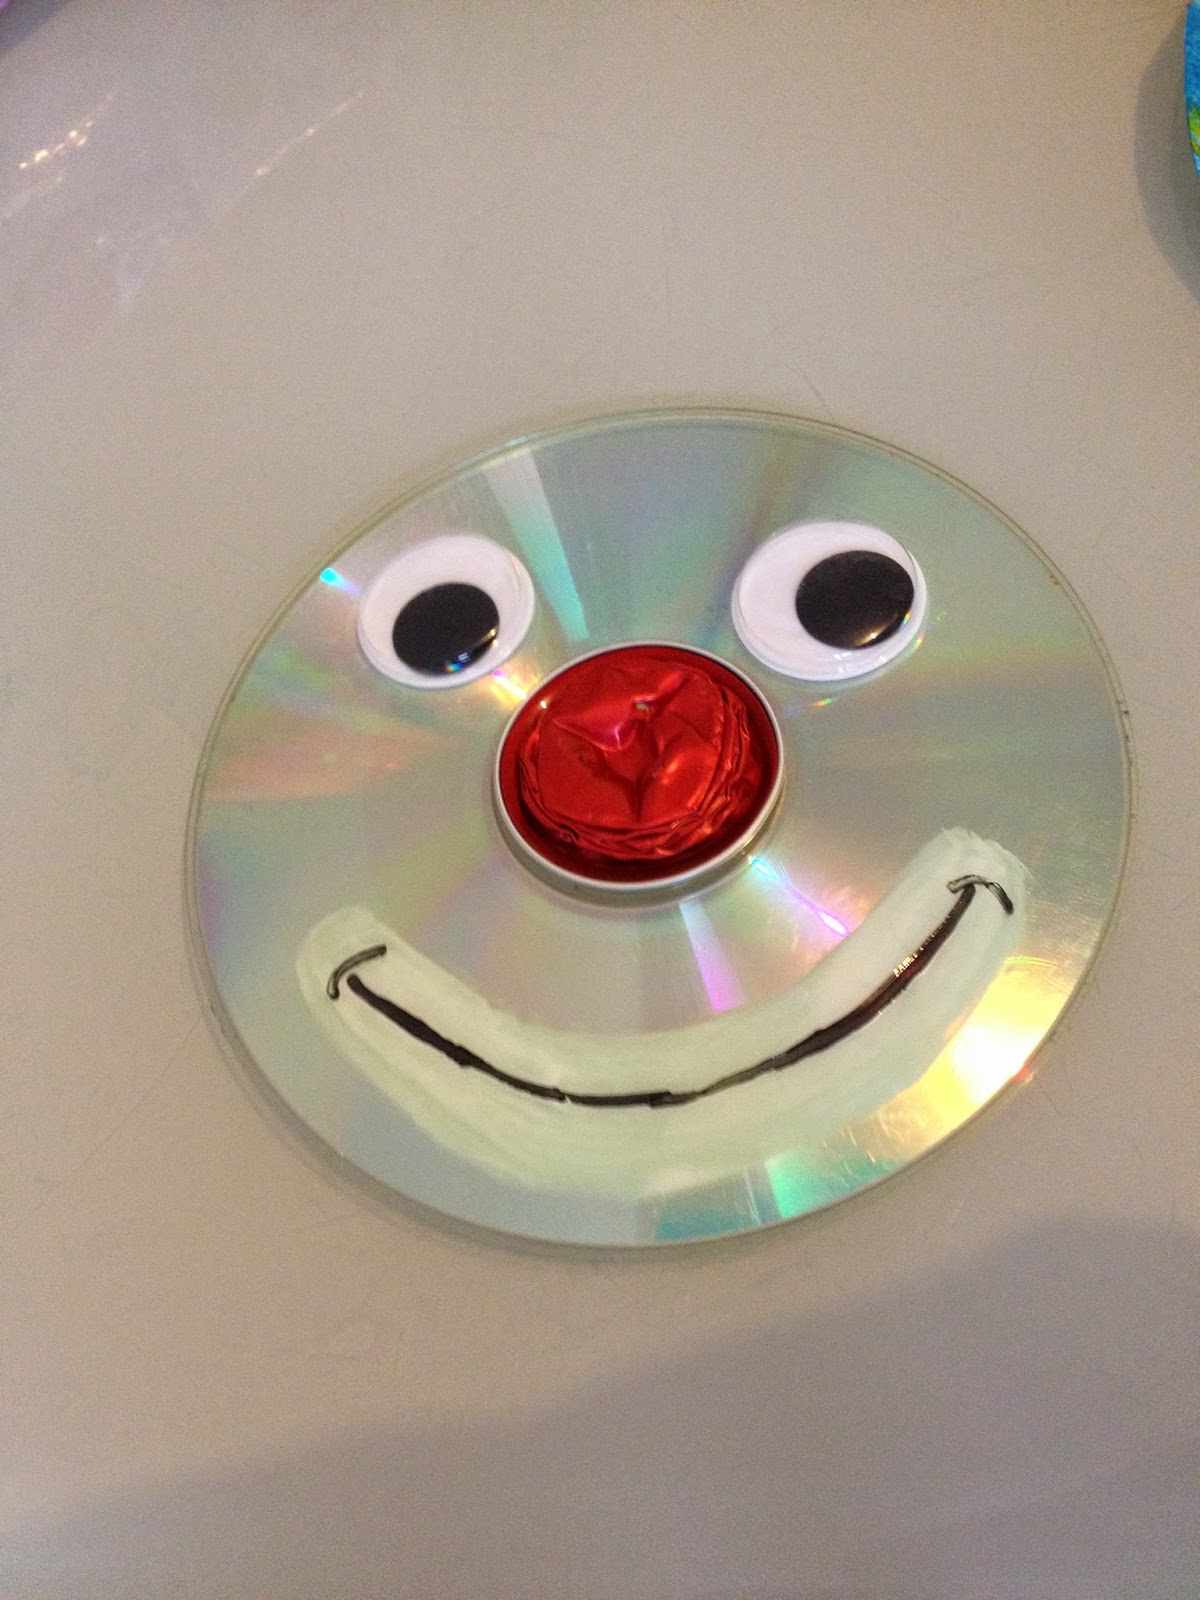 Les diy de fishounette clown cd - Dessiner un noeud ...